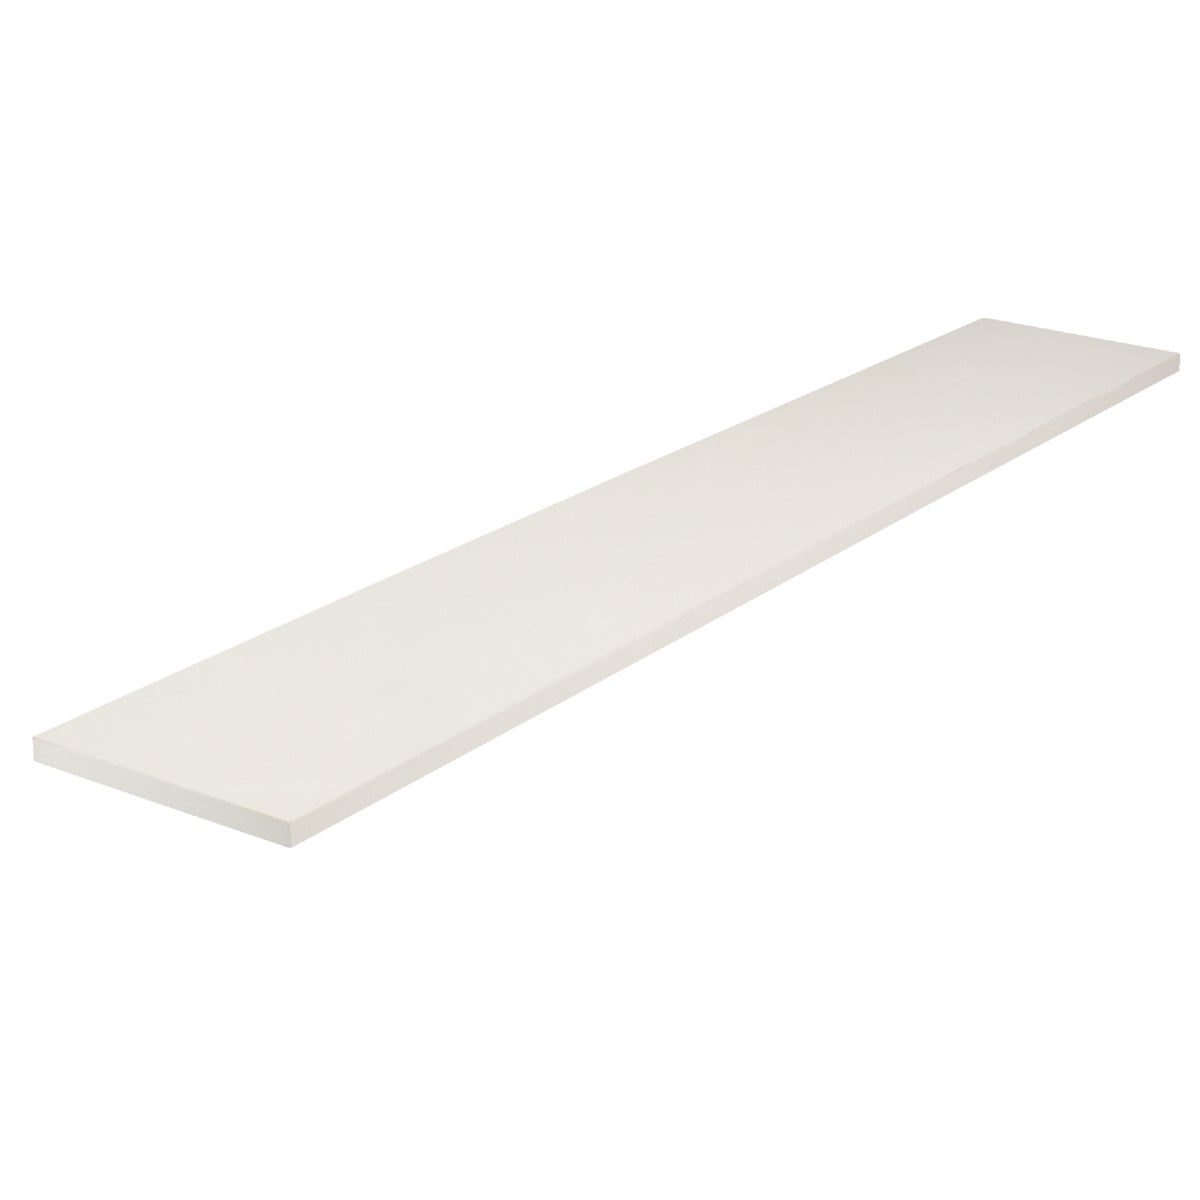 8X48 WHITE SHELF - 1980WH by Knape & Vogt Mfg Co